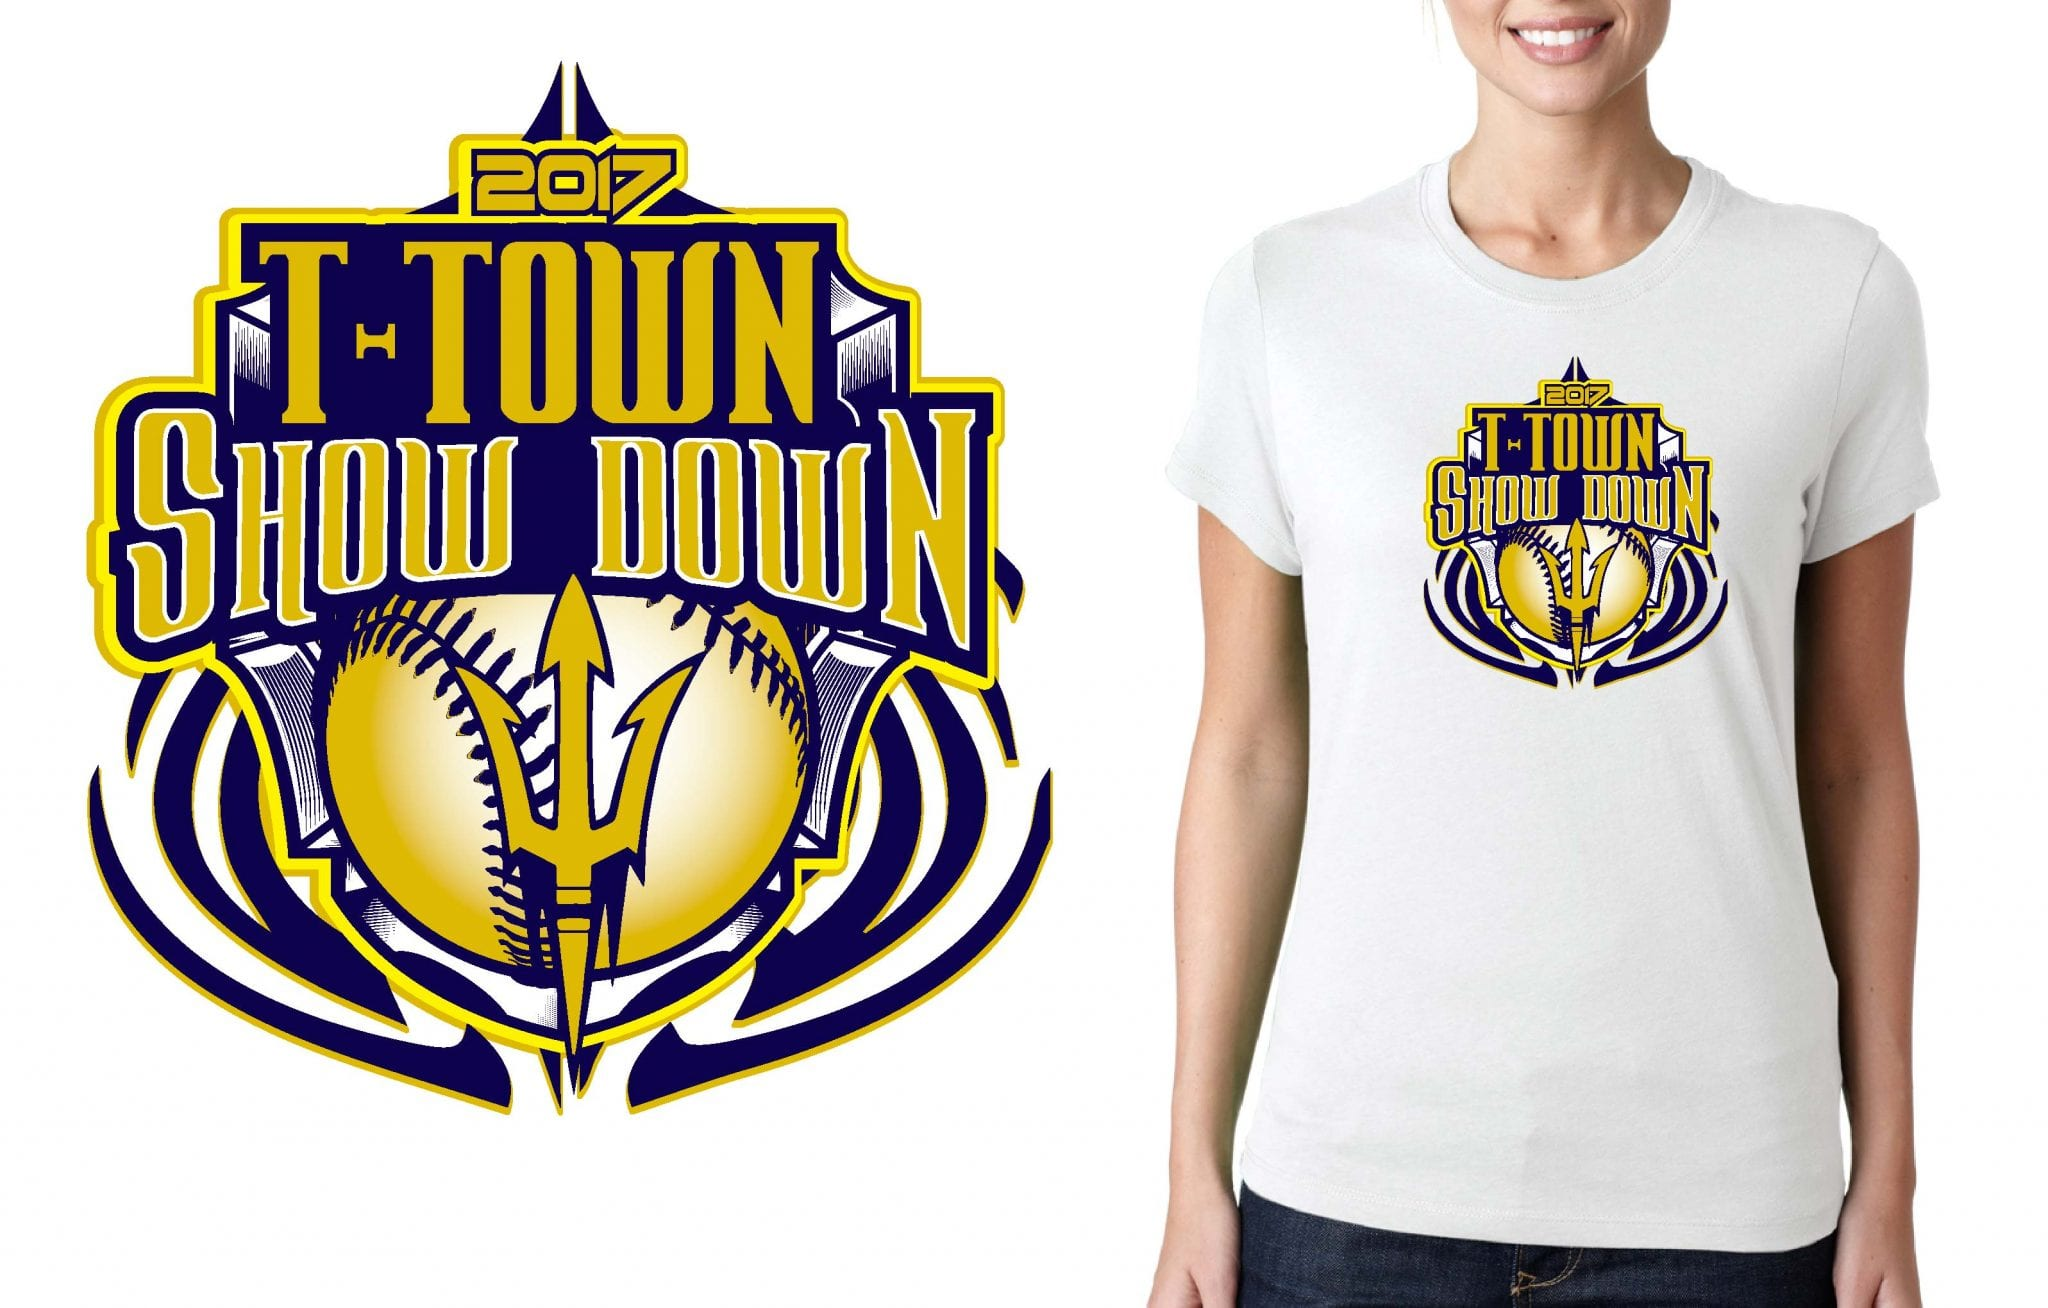 SOFTBALL LOGO for T-Town-ShowDown T-SHIRT UrArtStudio